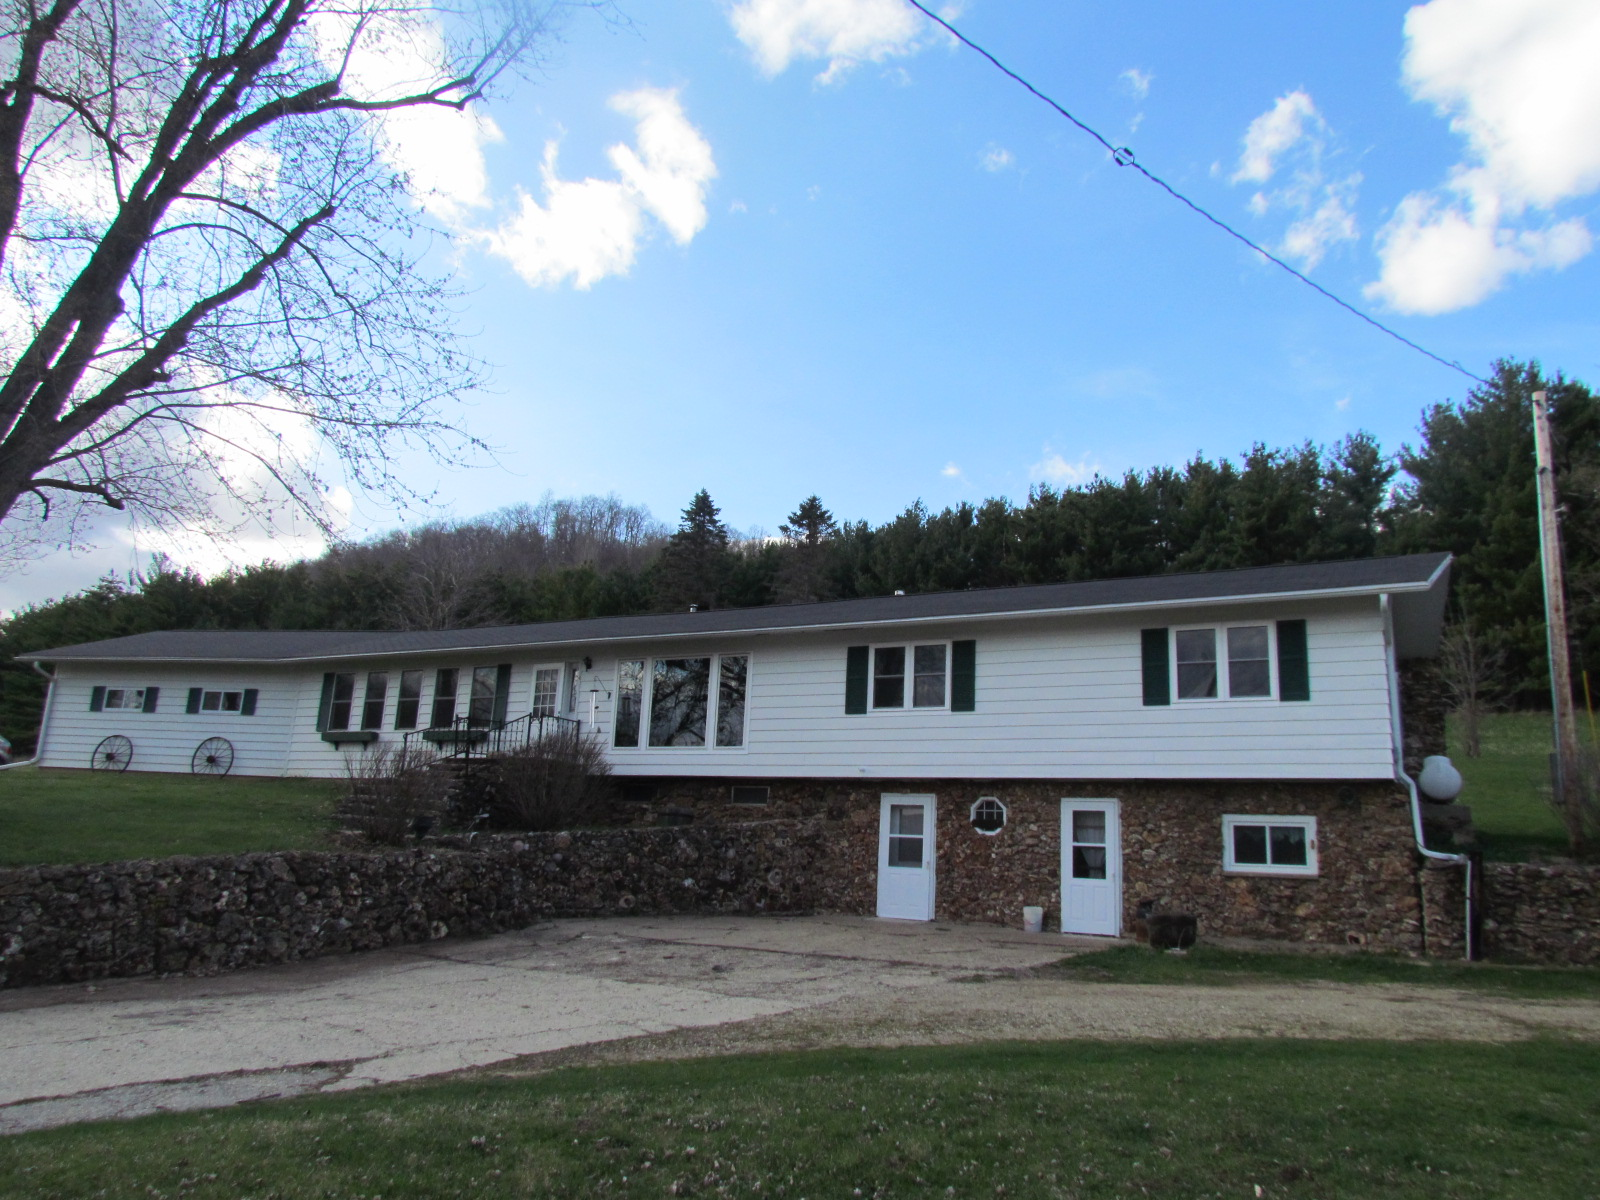 13450 County Rd D, Lafarge, Wisconsin 54639